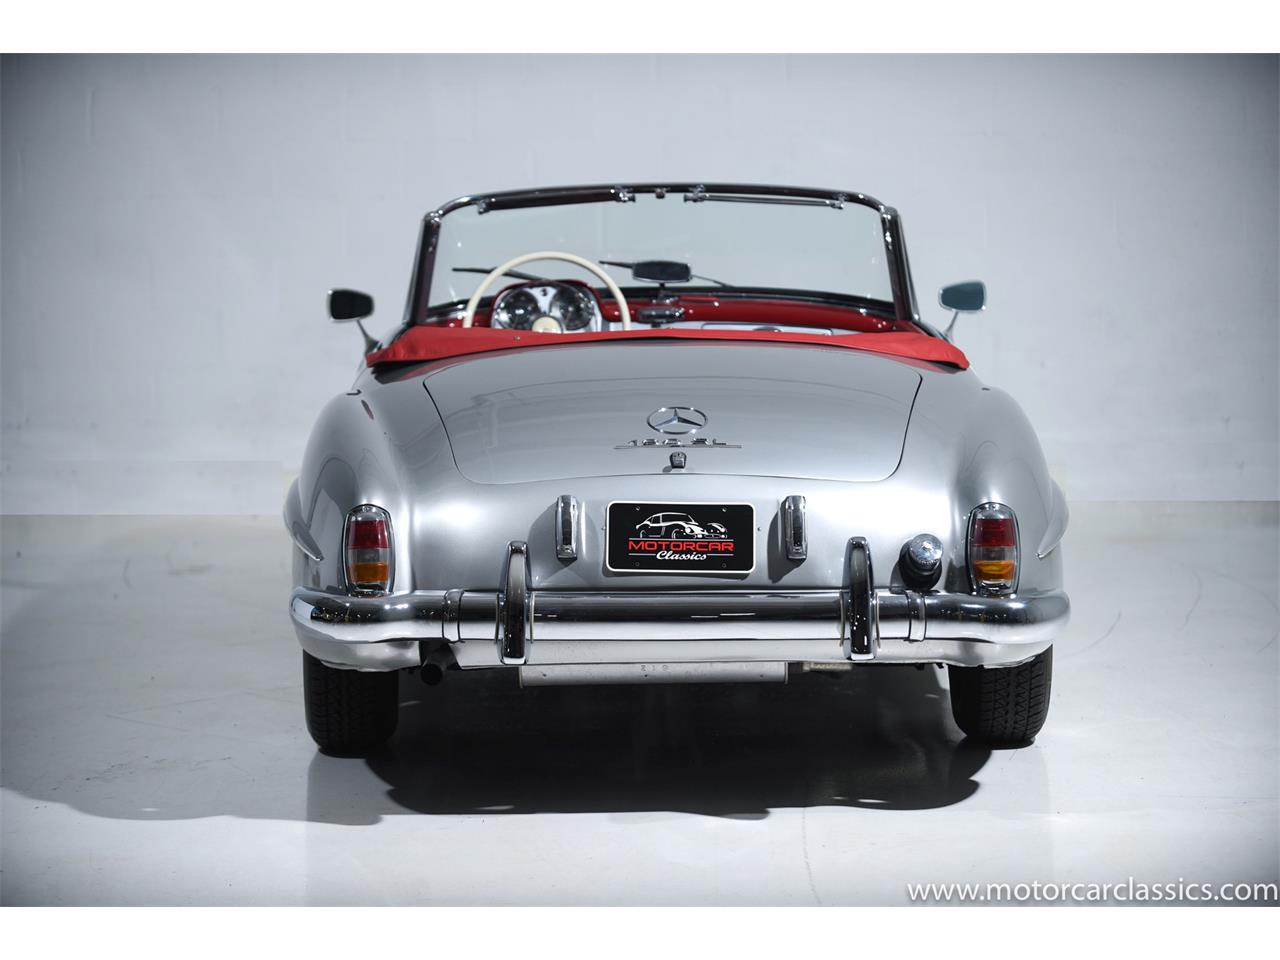 1957 Mercedes-Benz SL-Class (CC-1194351) for sale in Farmingdale, New York